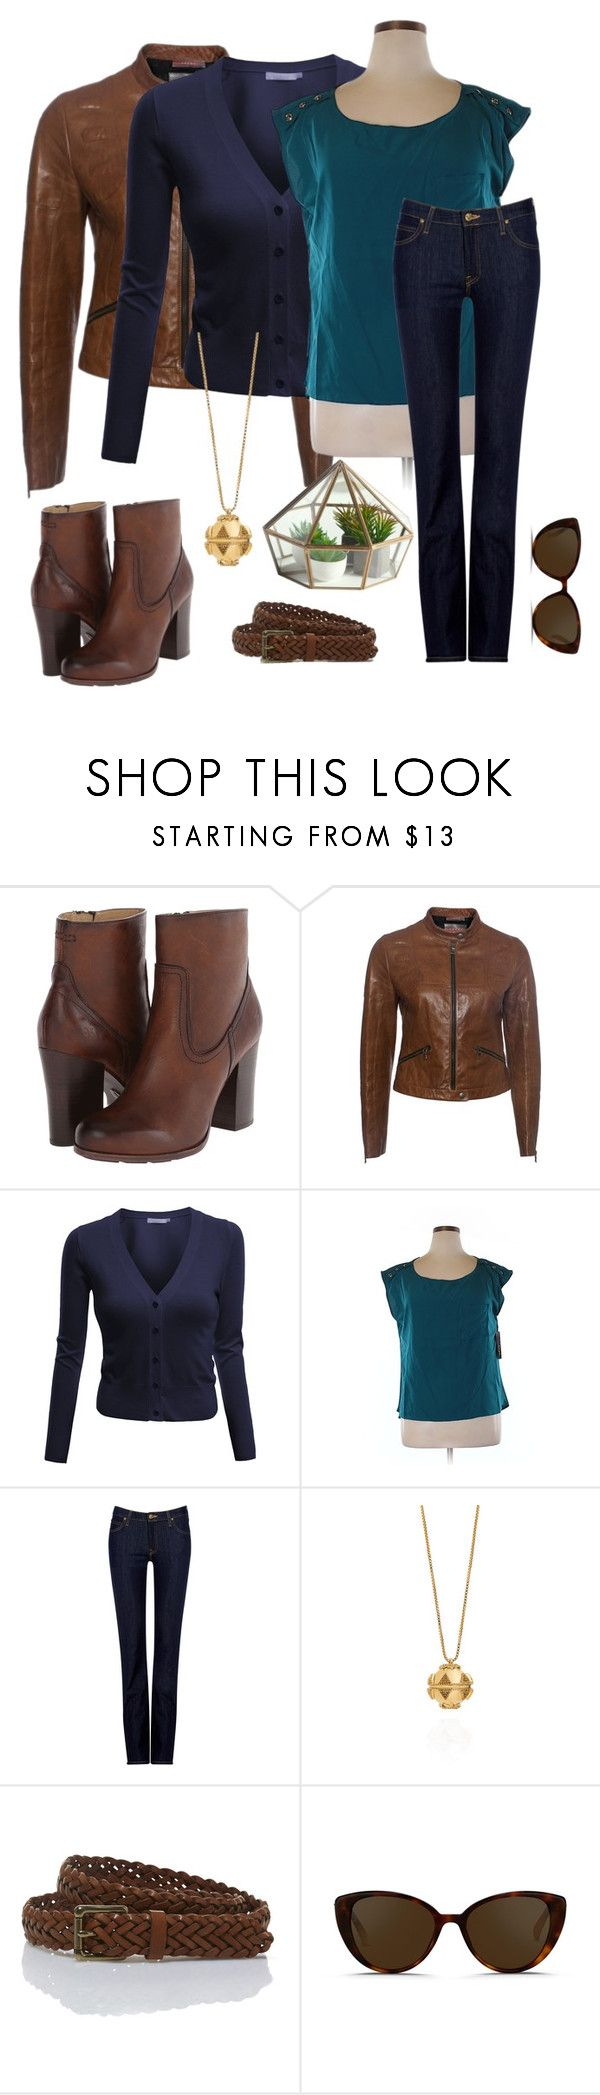 """""""Waiting for Spring"""" by wardrobepieces on Polyvore featuring Frye, Prada, Doublju, Hype, Lee, SB LONDON, L.L.Bean and Linda Farrow"""